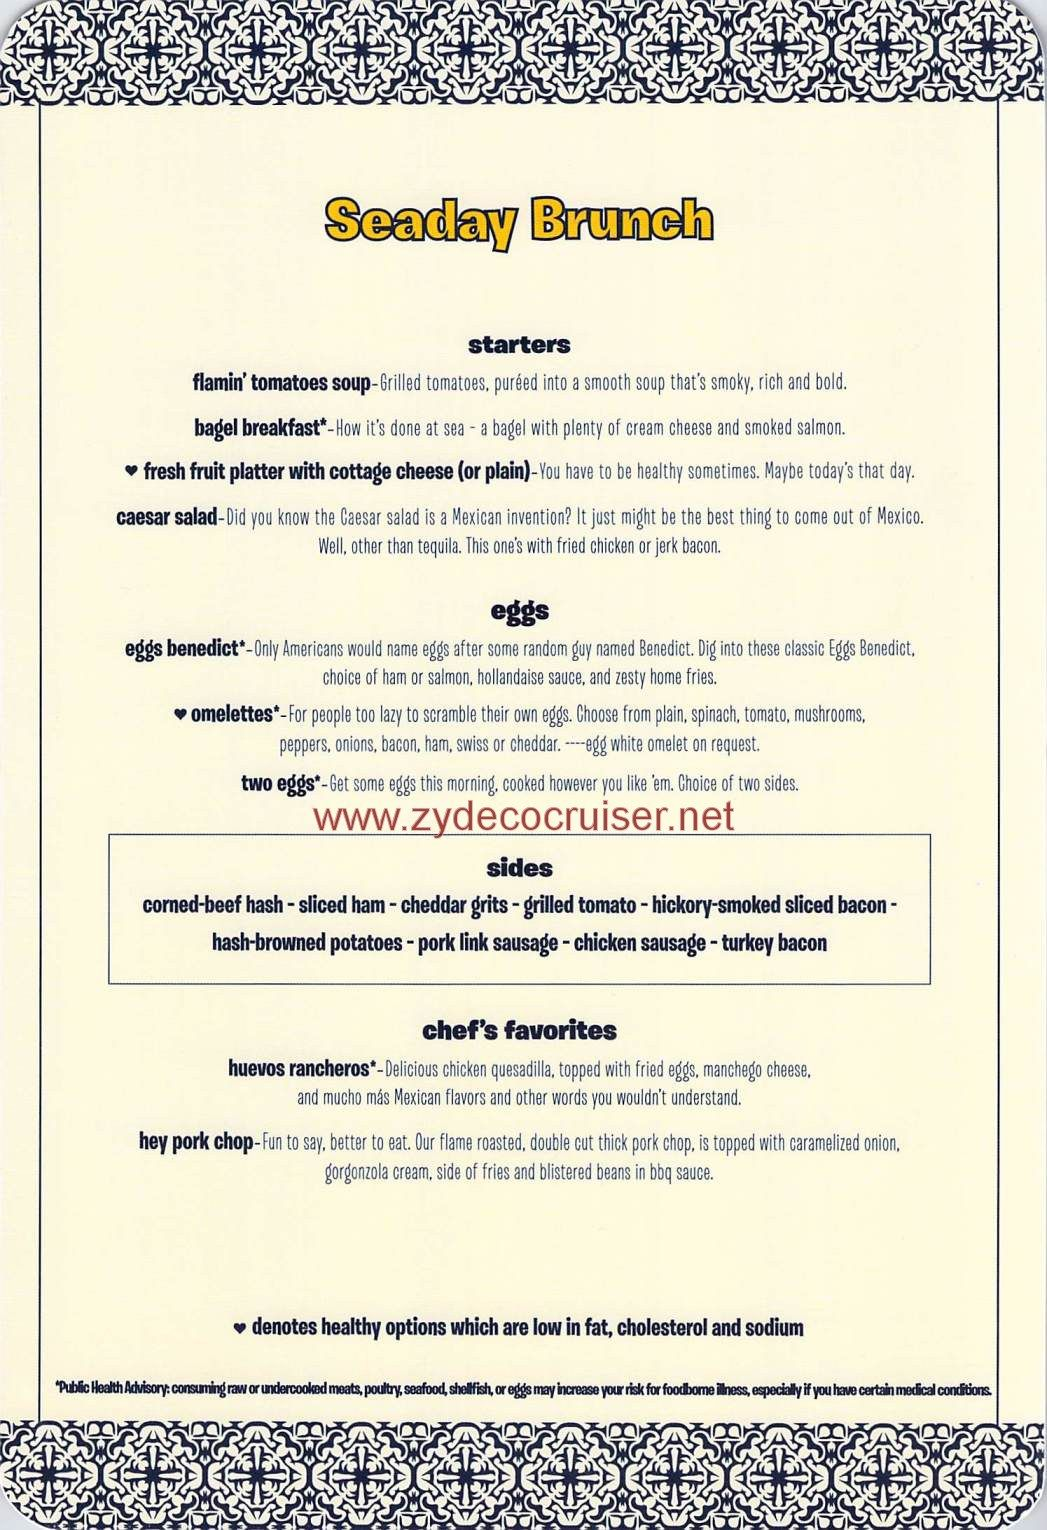 001: Carnival Cruise Seaday Brunch, Menu Front | Family Time ...